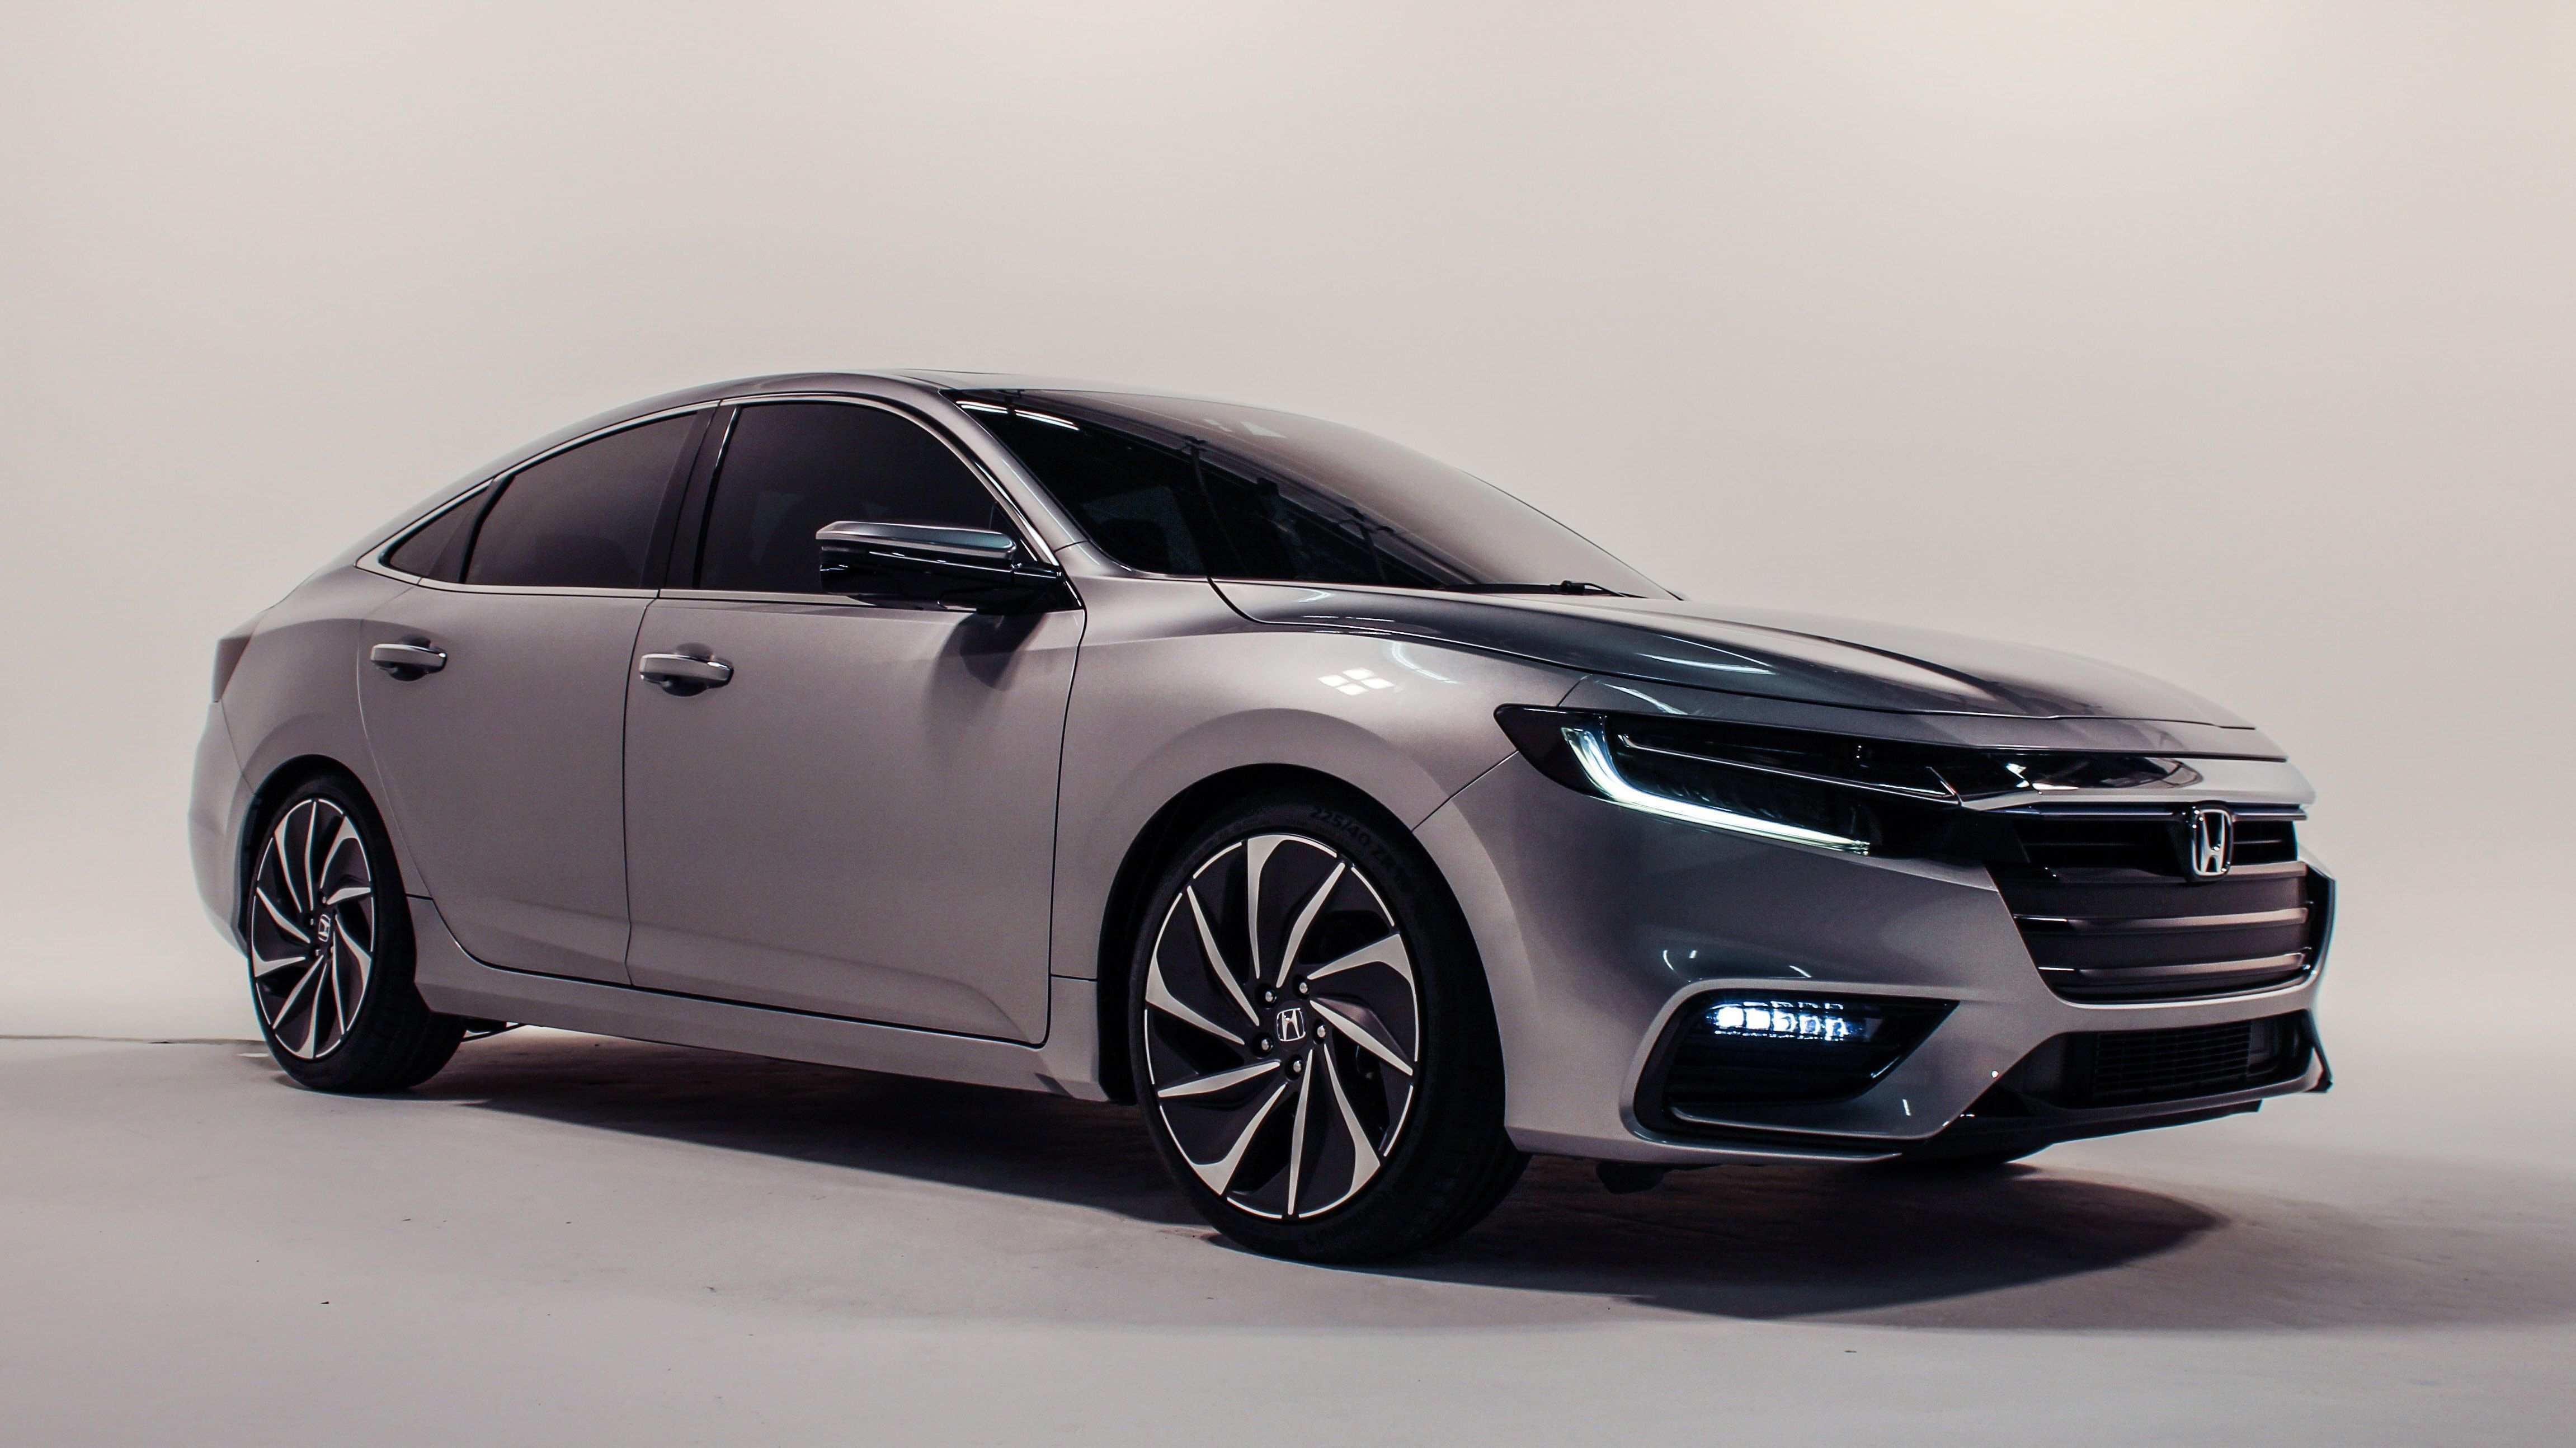 75 New Honda Hybrid 2020 Specs for Honda Hybrid 2020